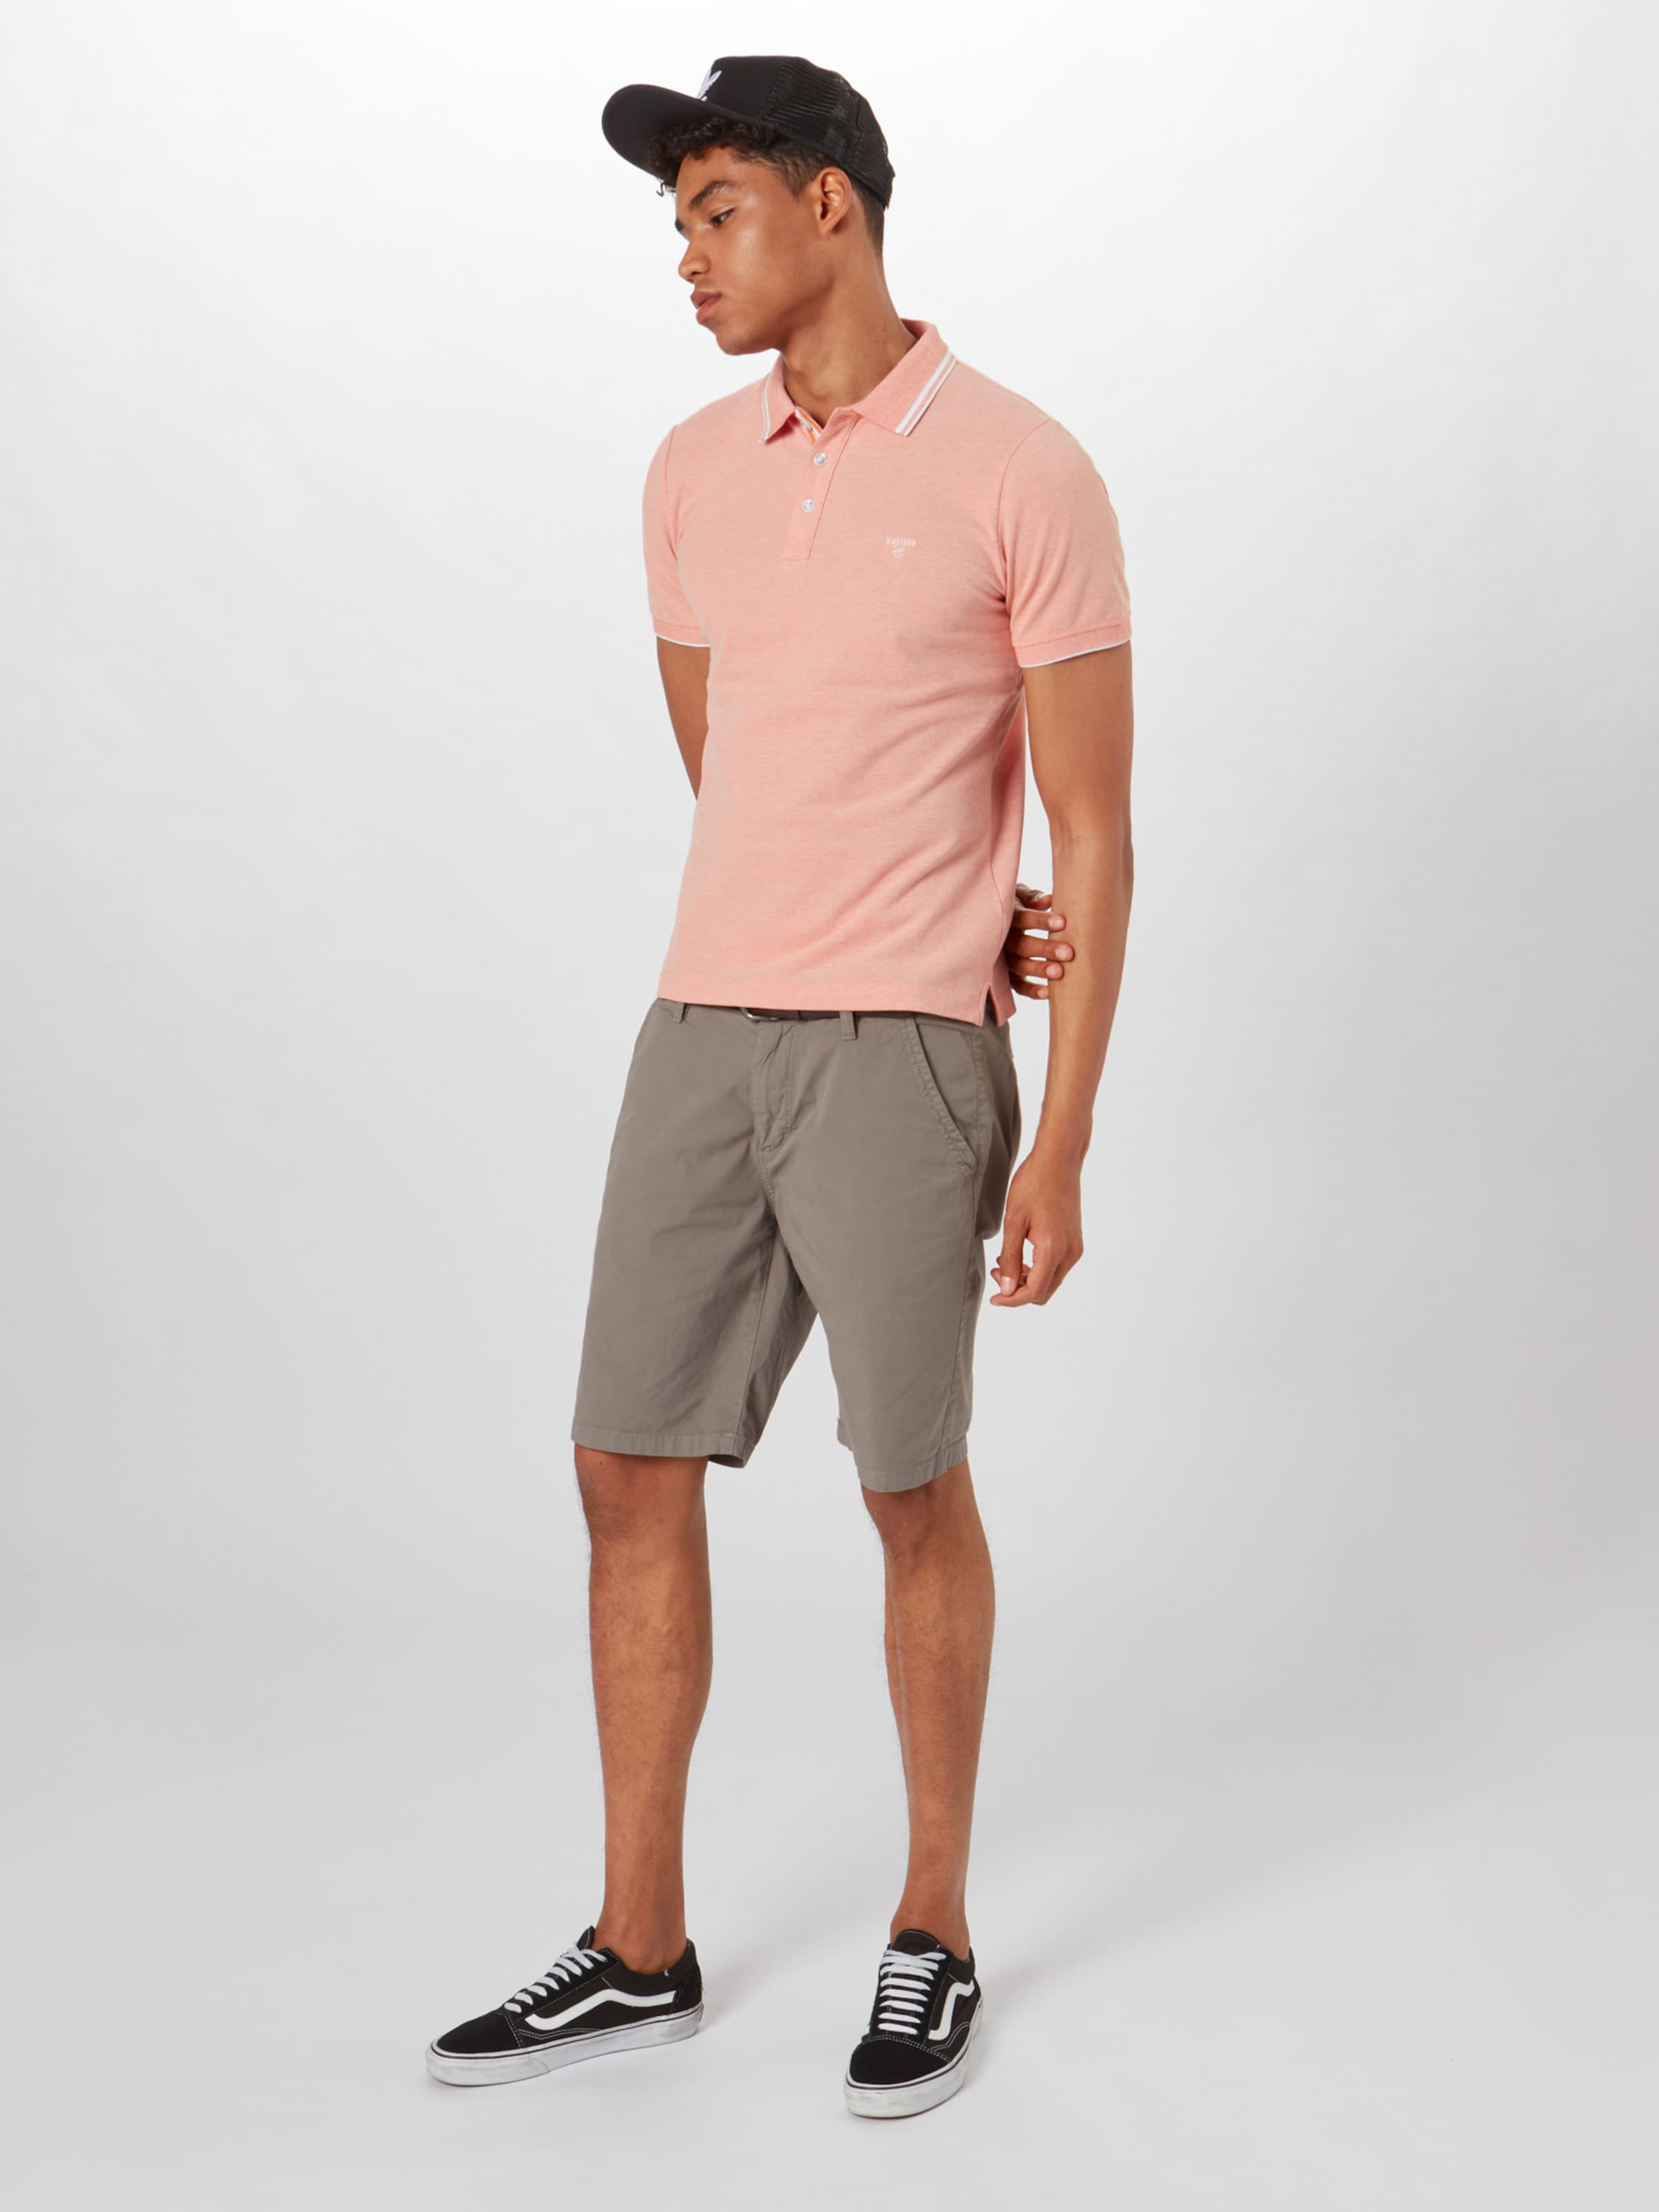 oliver Poloshirt Apricot S S In oliver Poloshirt YbWE29HeDI